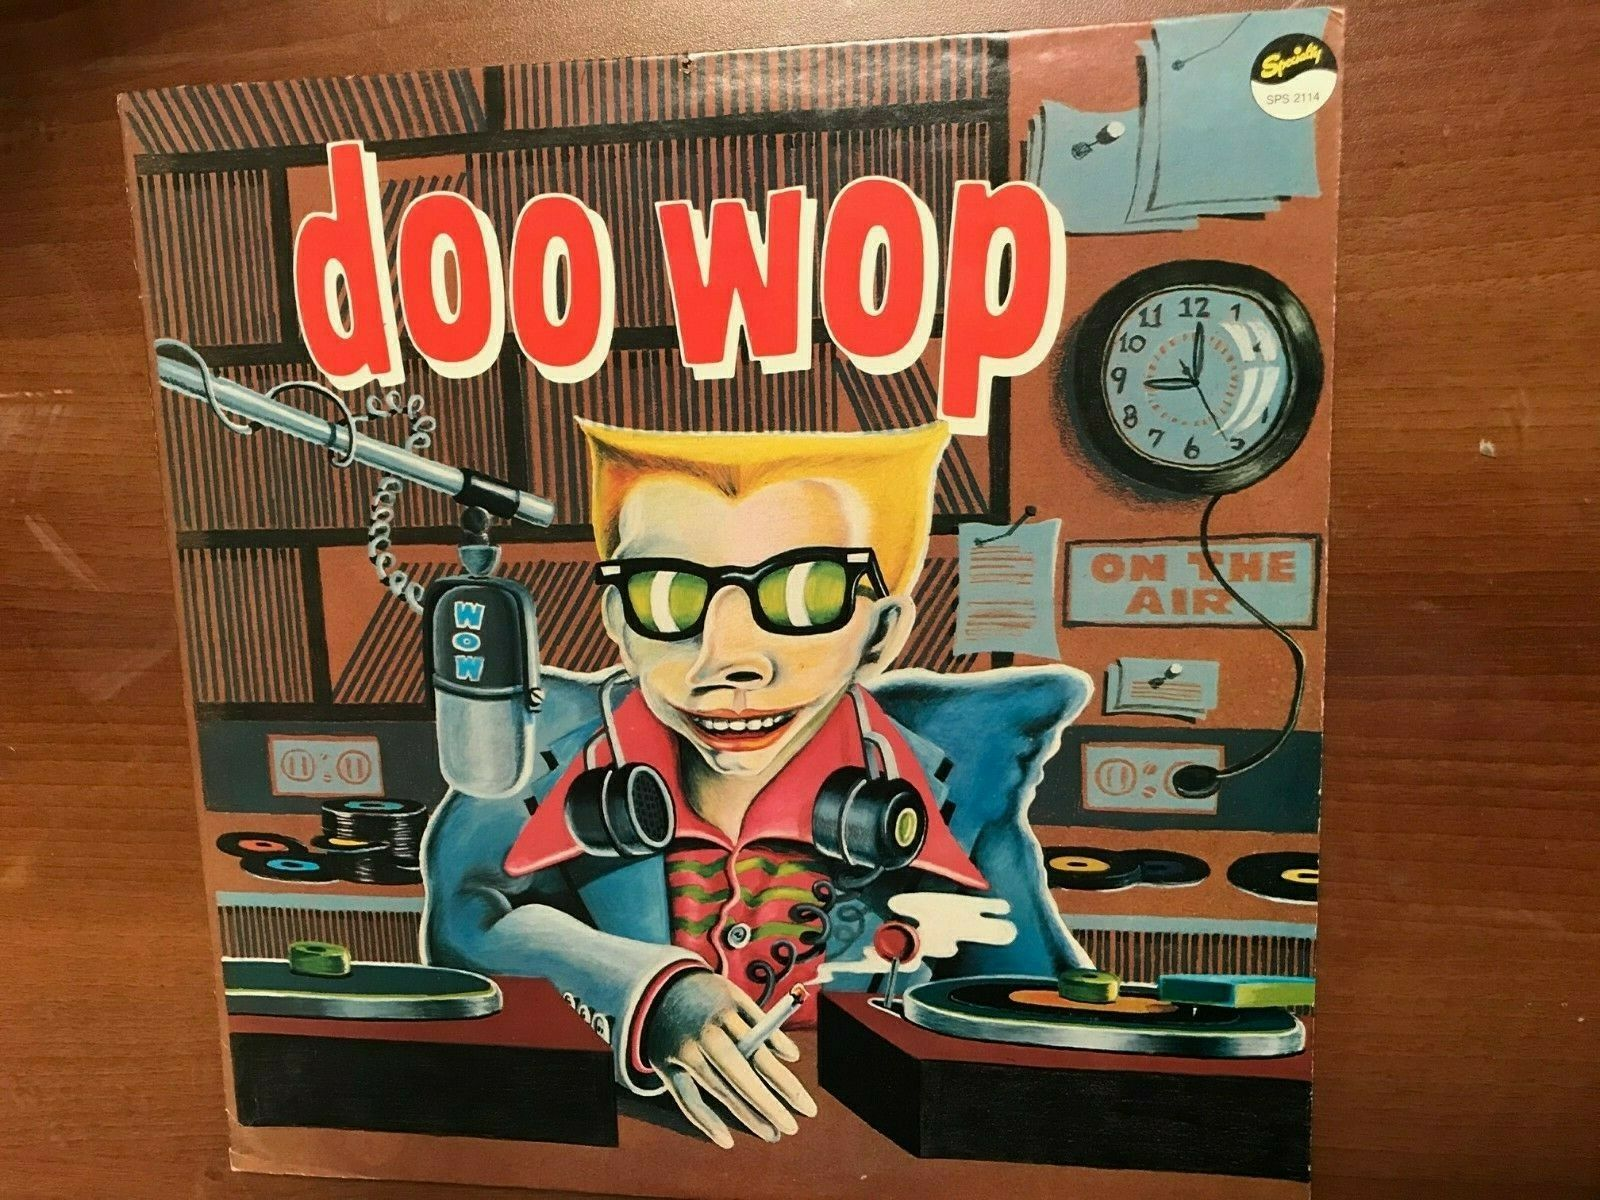 LP VINYL MUSIC RECORD DOO WOP ON THE AIR, SPECIALTY RECORDS NO 2114 - $25.00